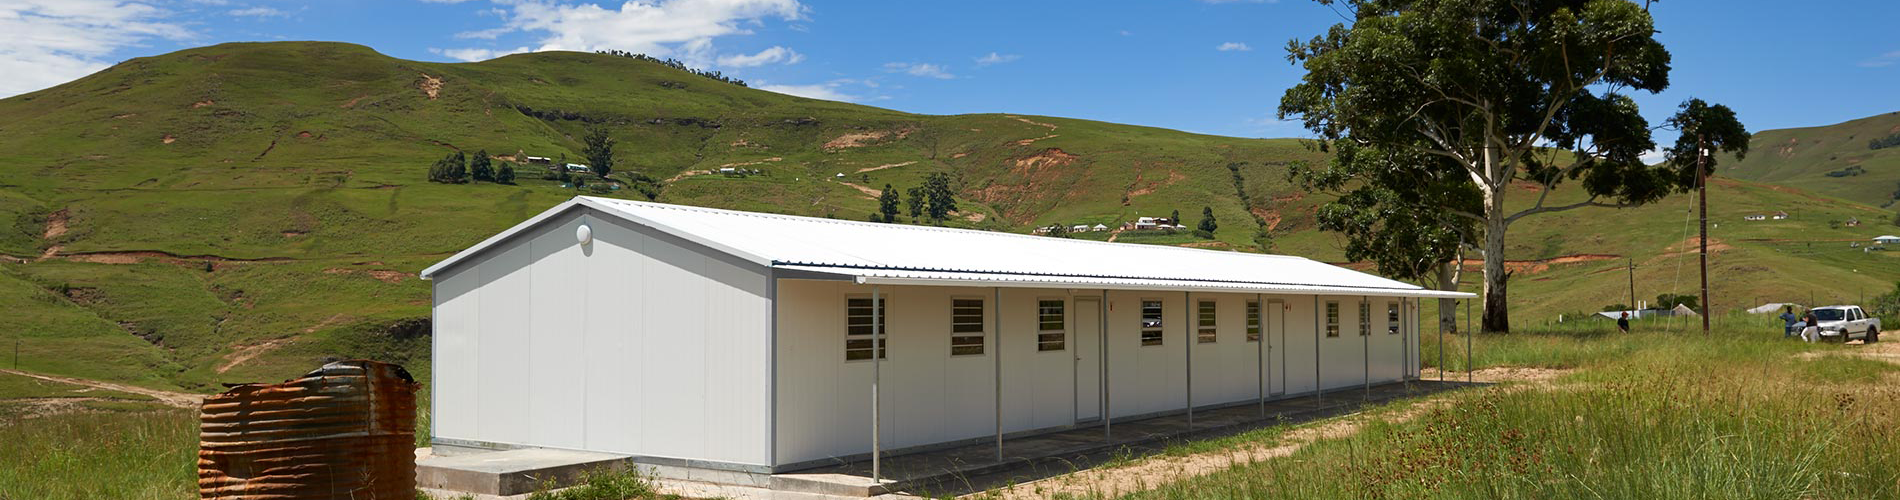 modular construction is used for prefab buildings